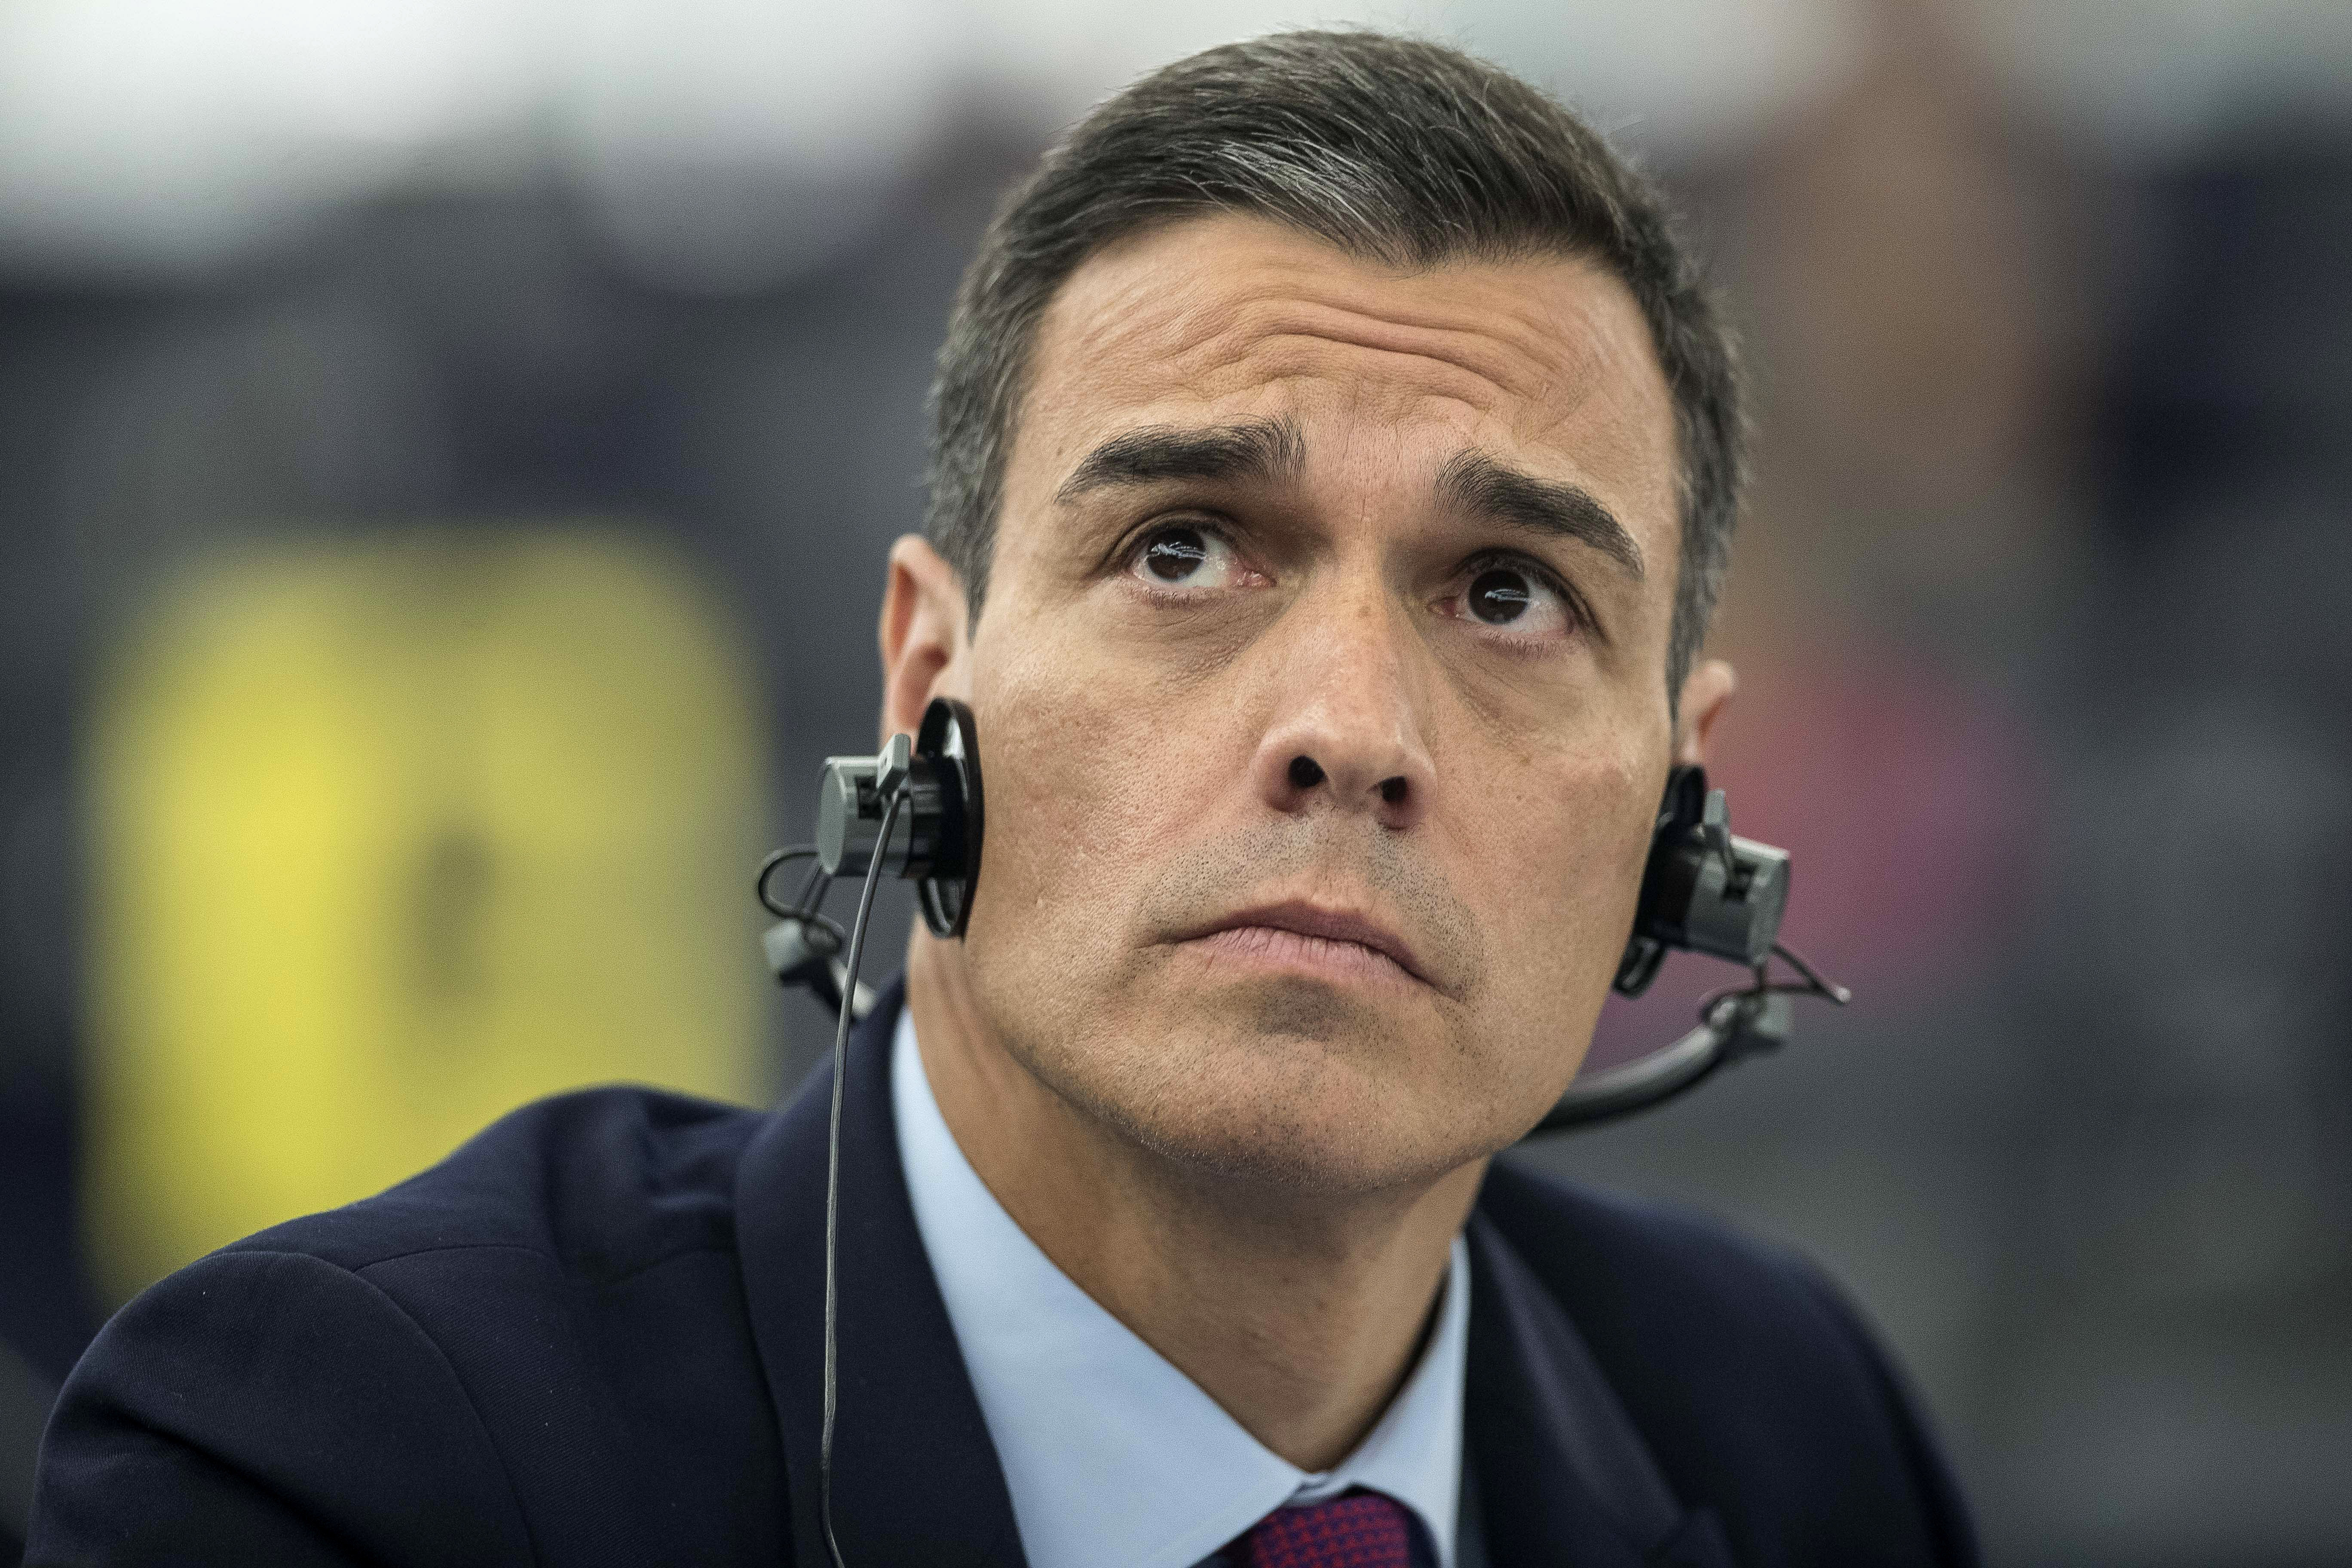 FILE - In this Jan.16, 2019 file photo, Spanish Prime Minister Pedro Sanchez listens during a debate on the future of Europe at the European Parliament in Strasbourg, eastern France. During a visit to the national institute for cybersecurity in Leon in Spain on Tuesday April 9, 2019, Sanchez said that whoever wins the upcoming general election in Spain should launch a national cybersecurity plan to fight attempts to undermine democracy and citizens' trust in the political system. (AP Photo/Jean-Francois Badias, File)